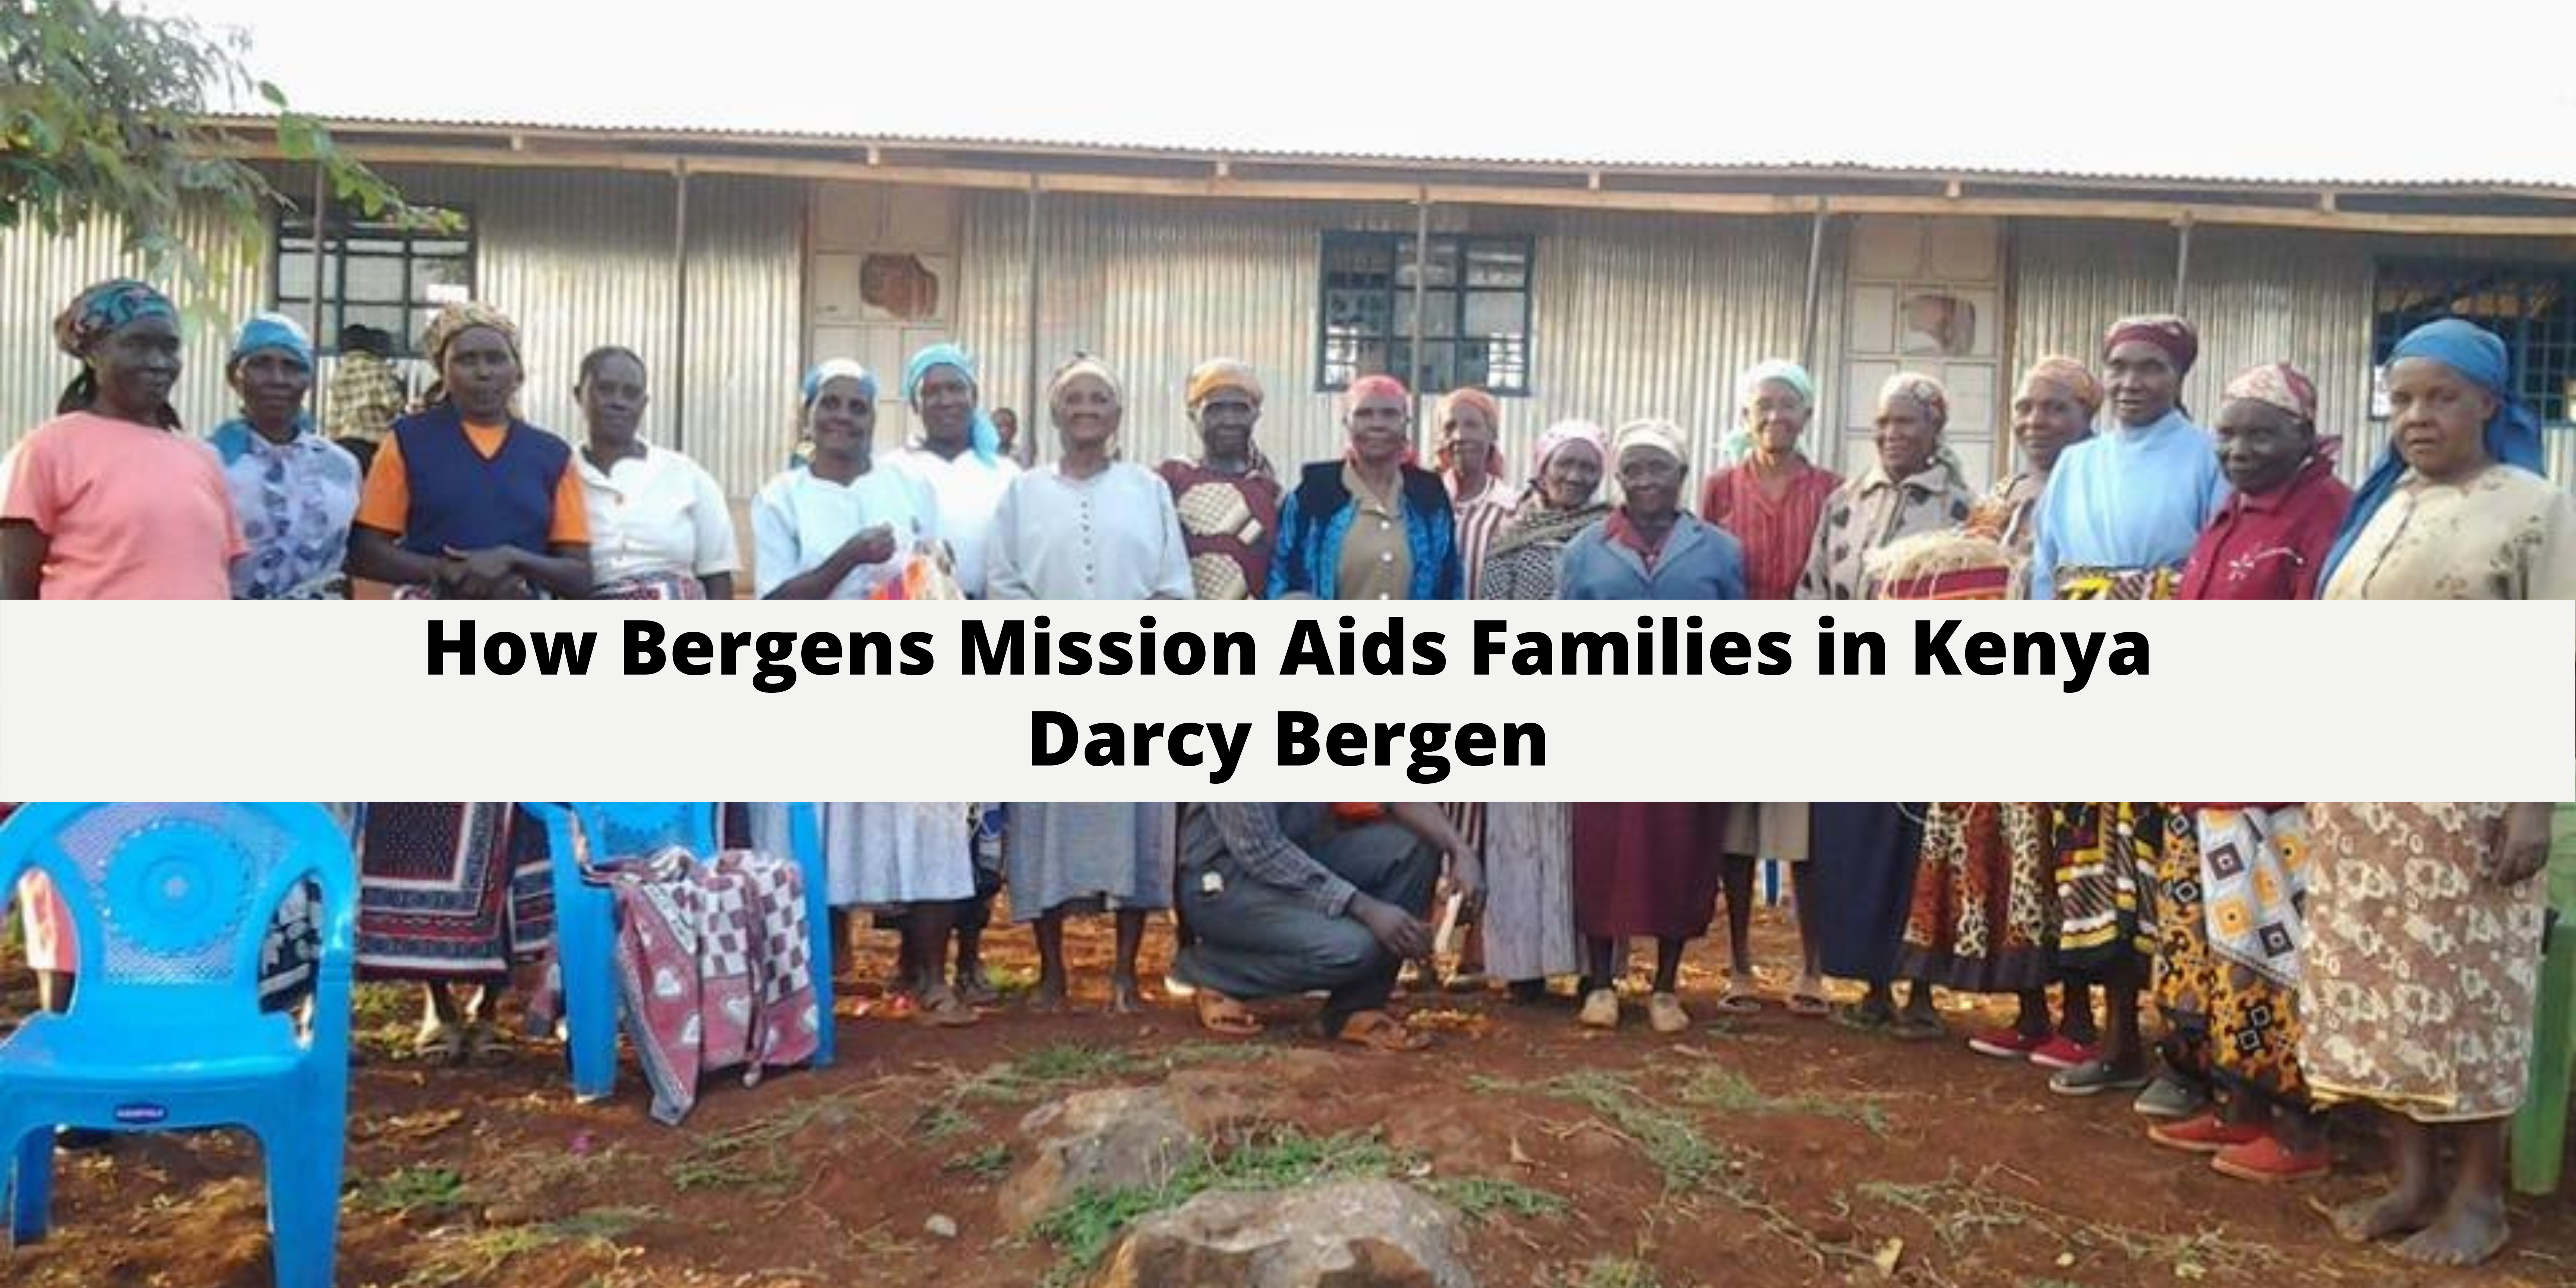 Bergens Mission Aids Families in Kenya